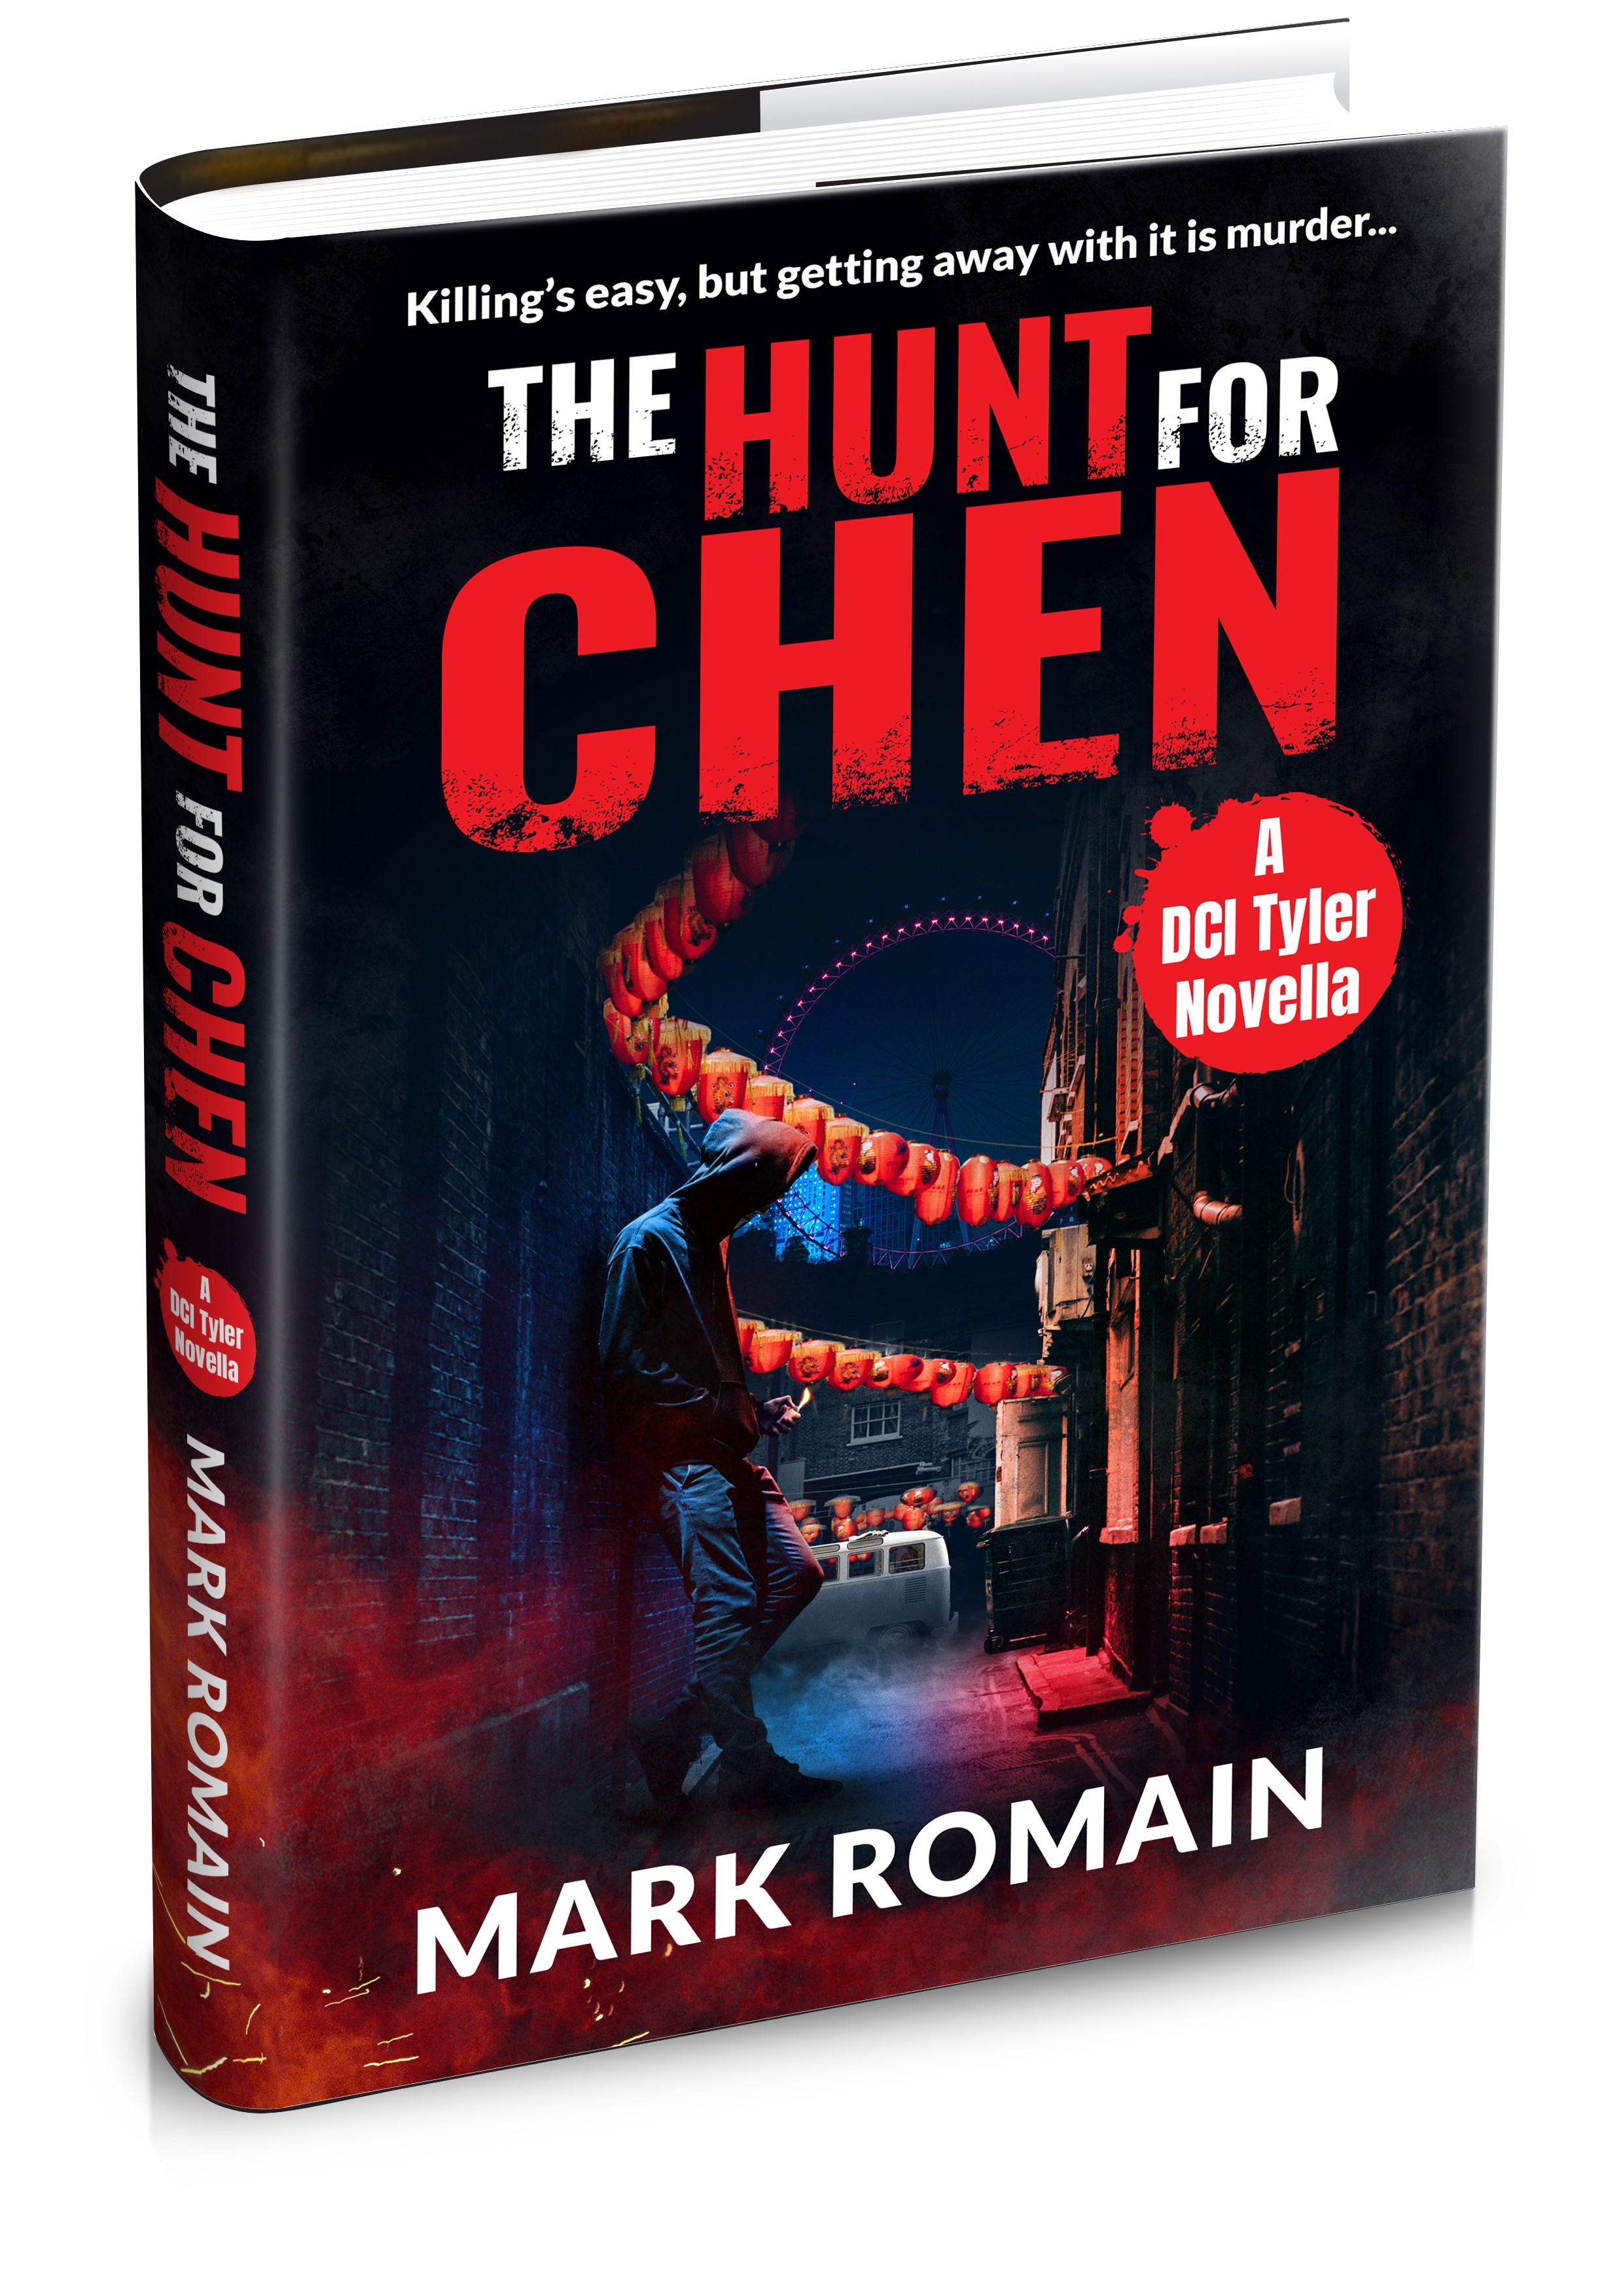 Paperback and ebook covers for London Noir crime thriller